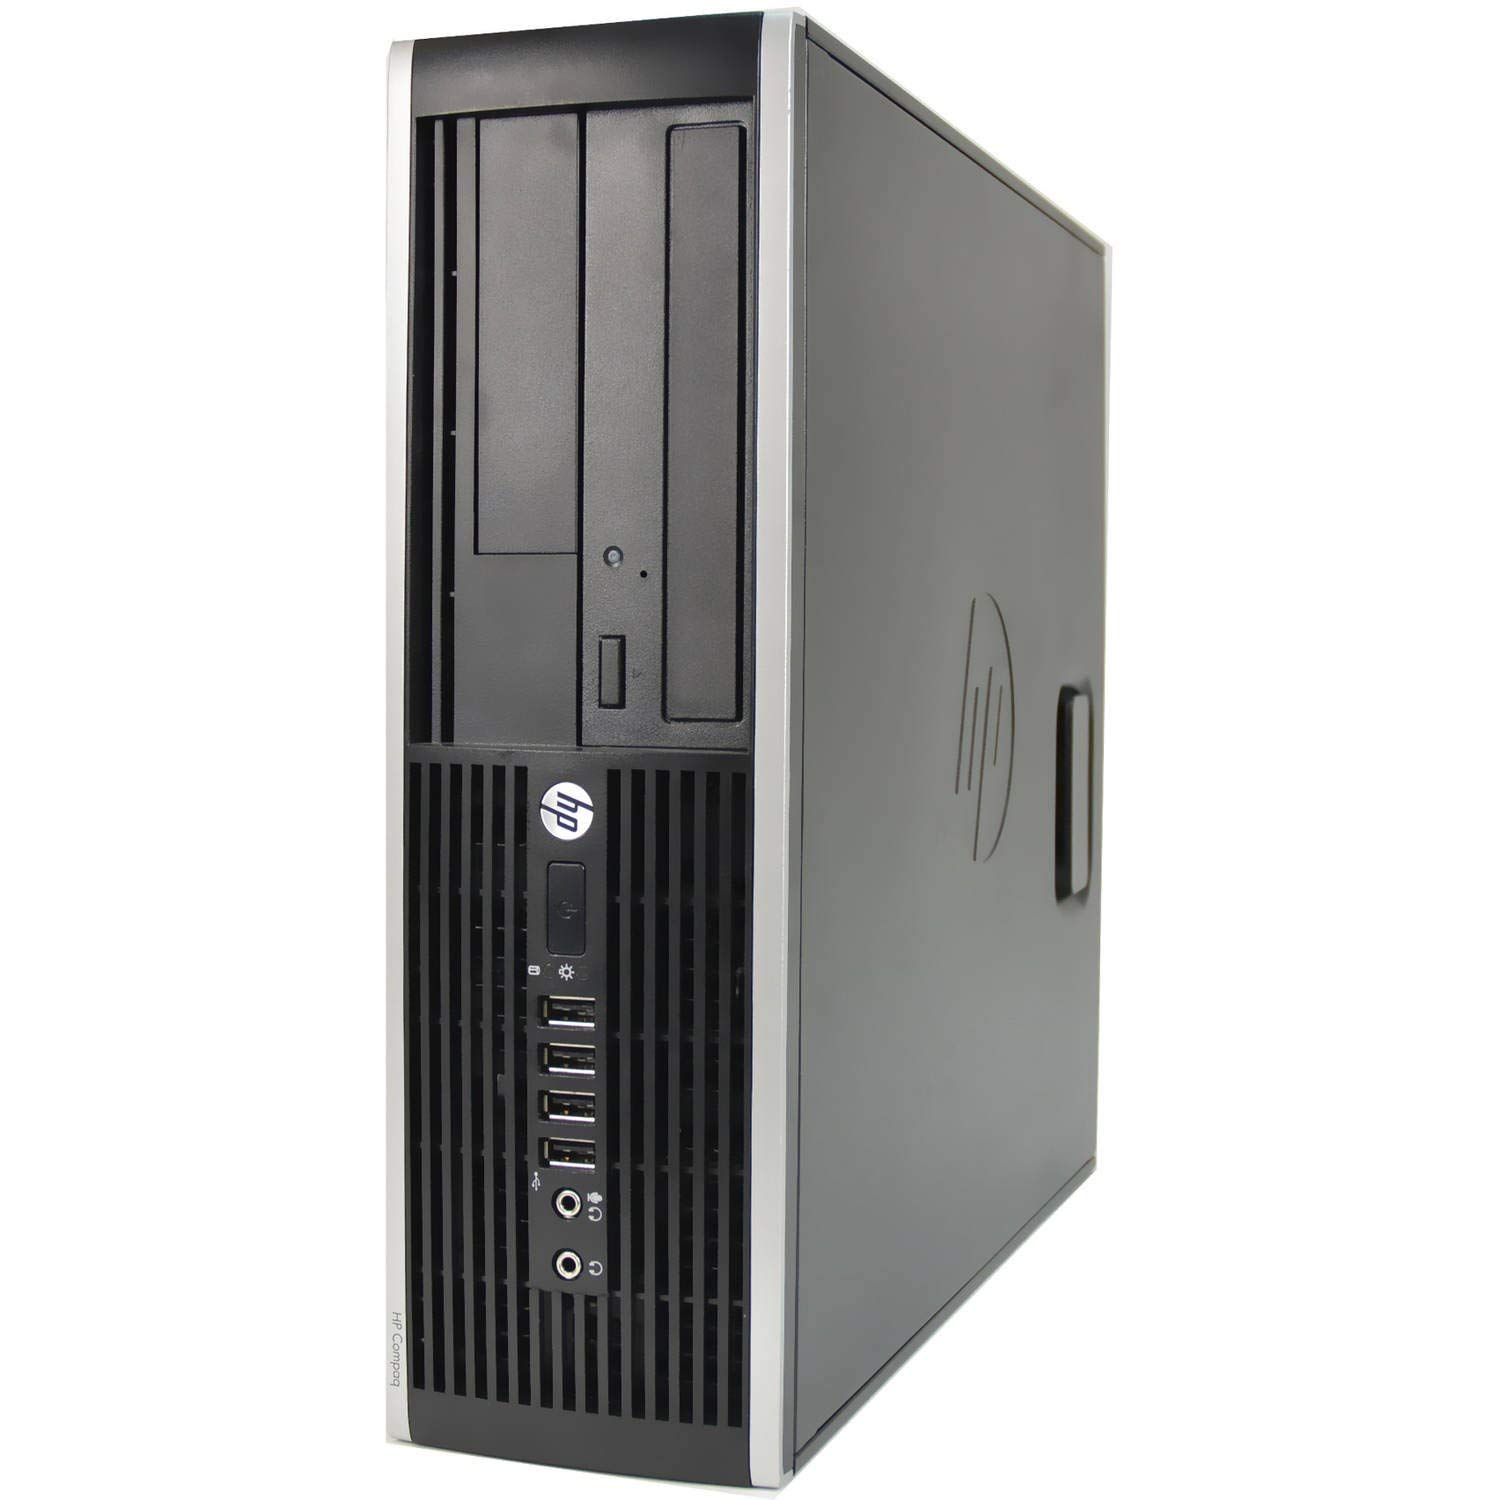 HP Desktop, Dual Core AMD, New 8gb Memory, 500gb, DVD, Windows 10 Professional, WiFi Wireless (Renewed)